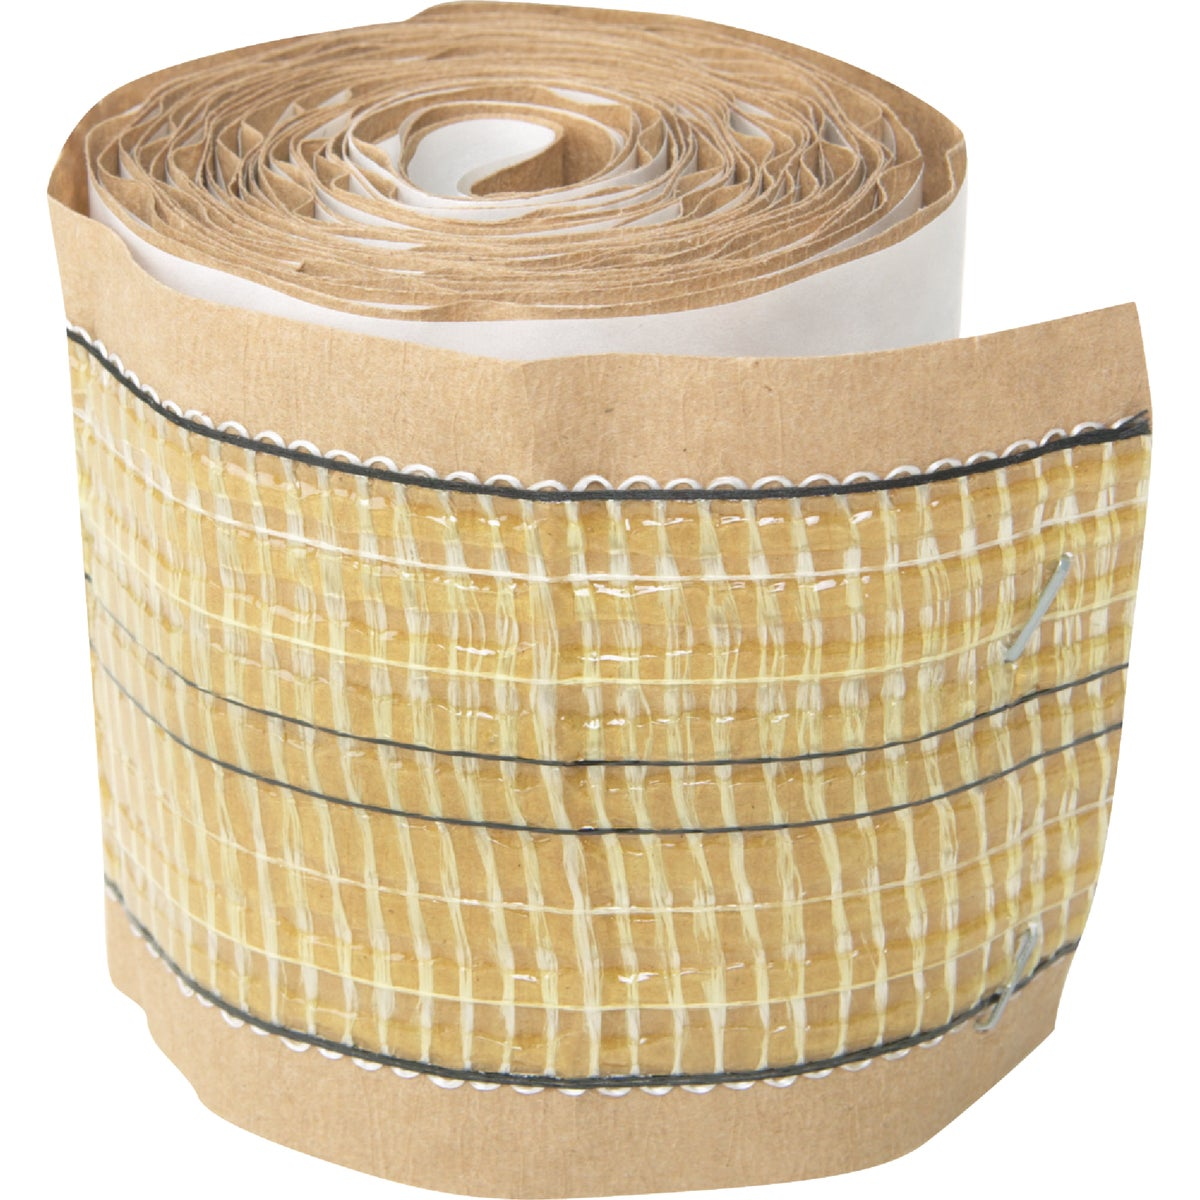 COLD SEAMING TAPE - 50-305-12 by Qep Co Inc Roberts